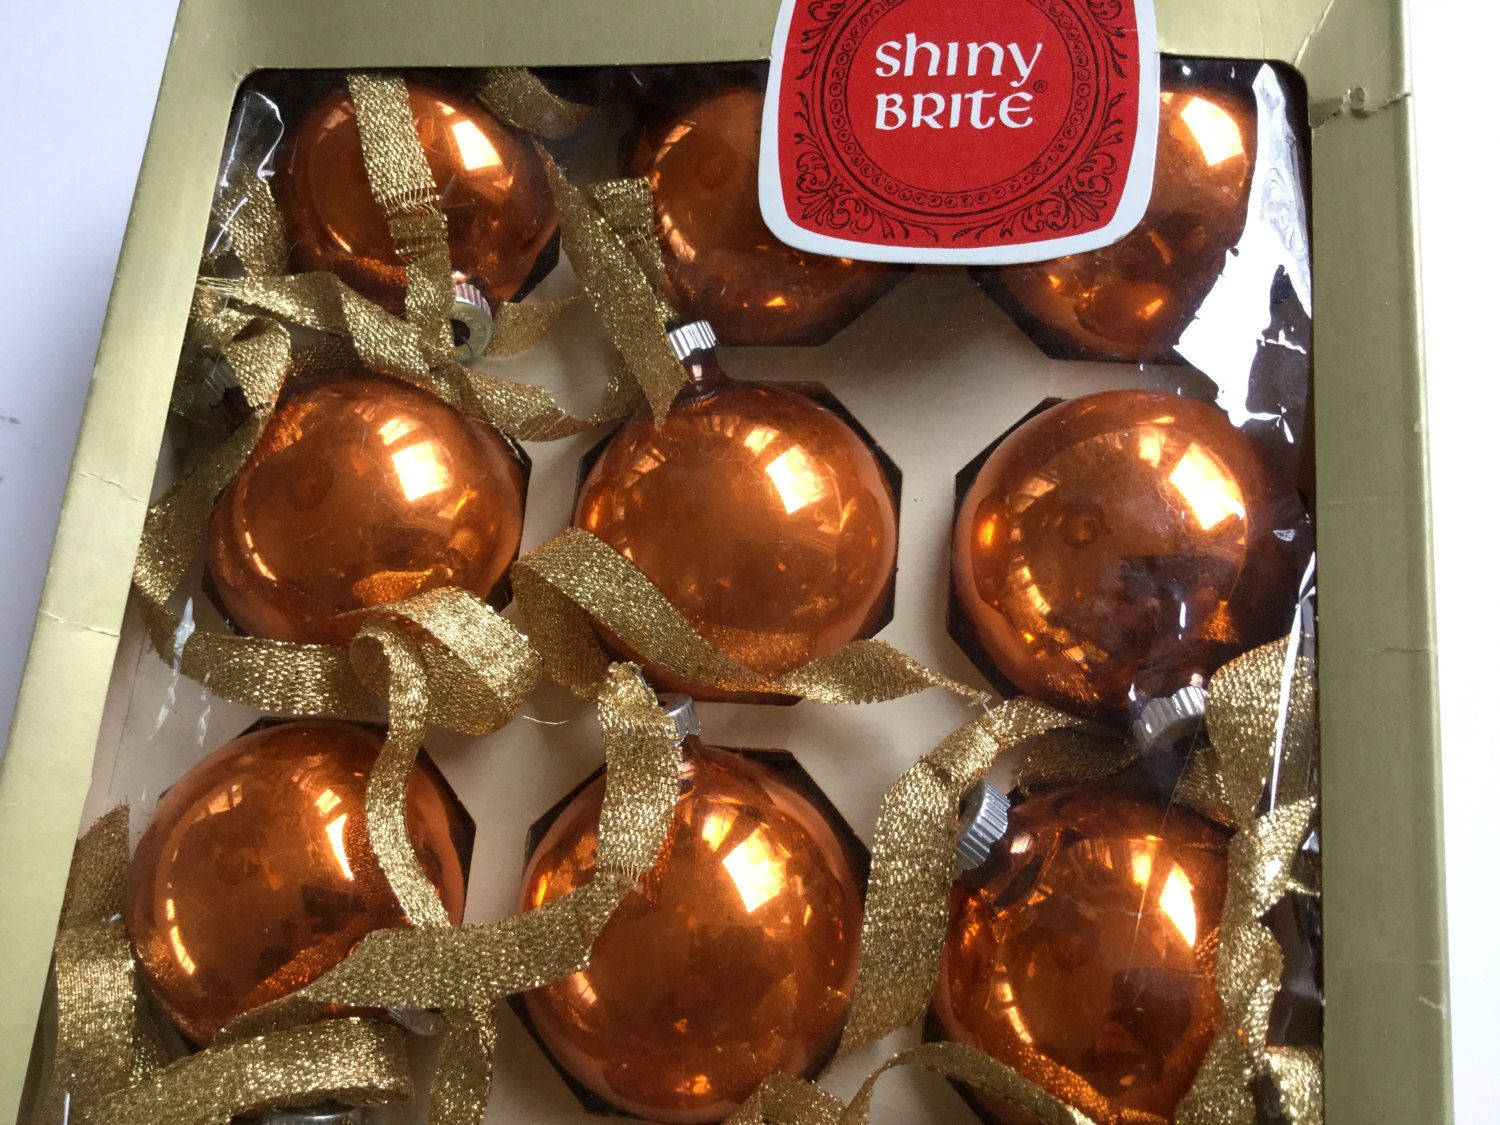 Glass christmas ball ornaments - Vintage Collection Orange Shiny Brite Glass Christmas Ball Ornaments Lot In Original Box